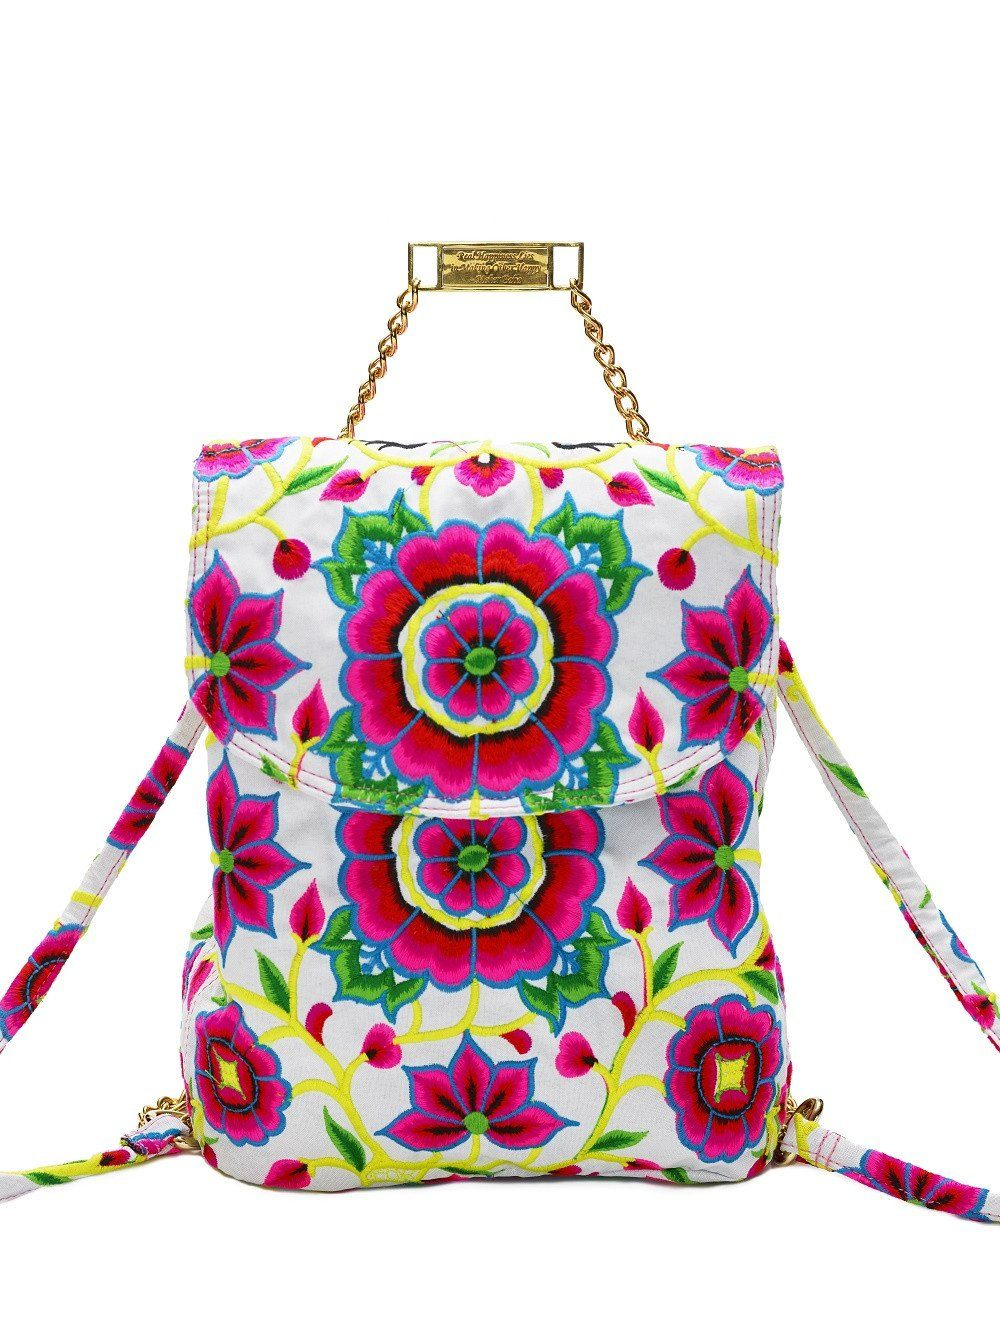 Nadine White Backpack - Blumera